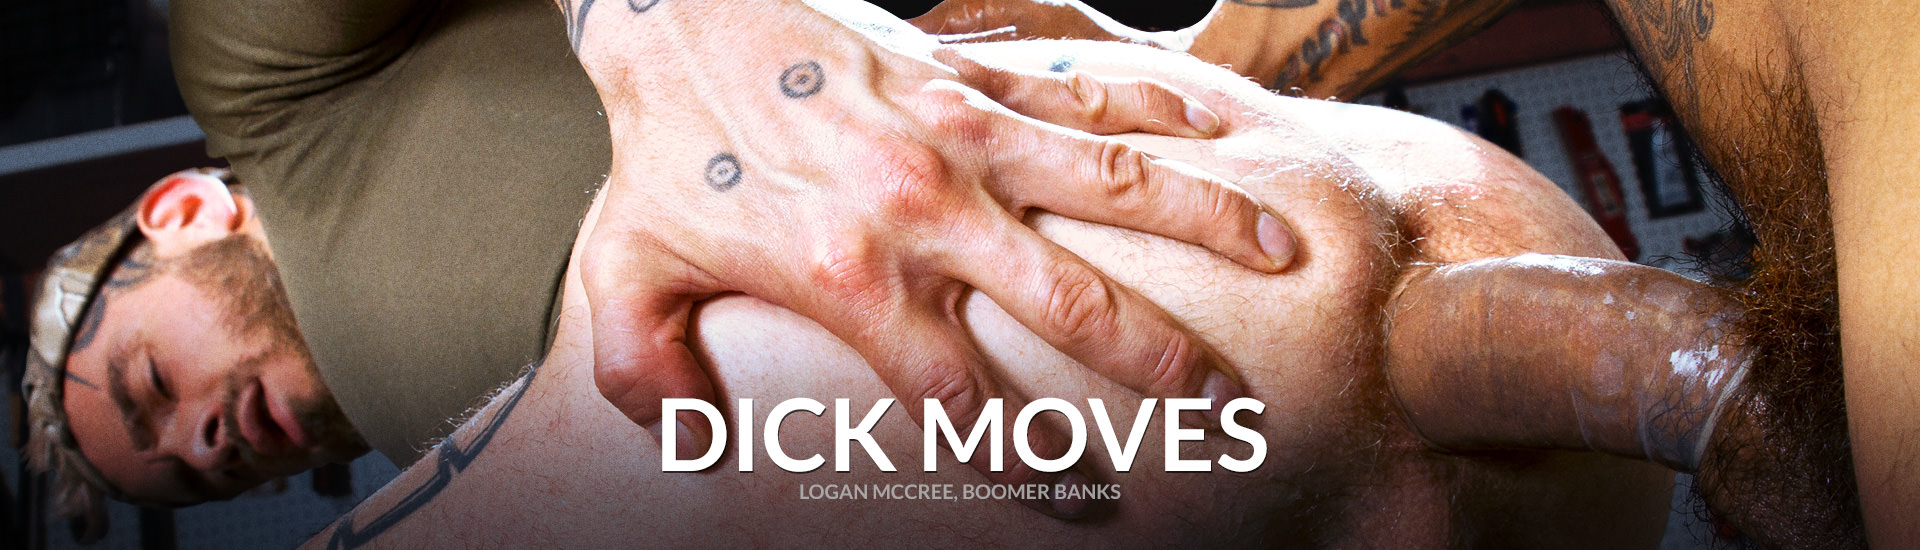 Hard cocks and dick moves